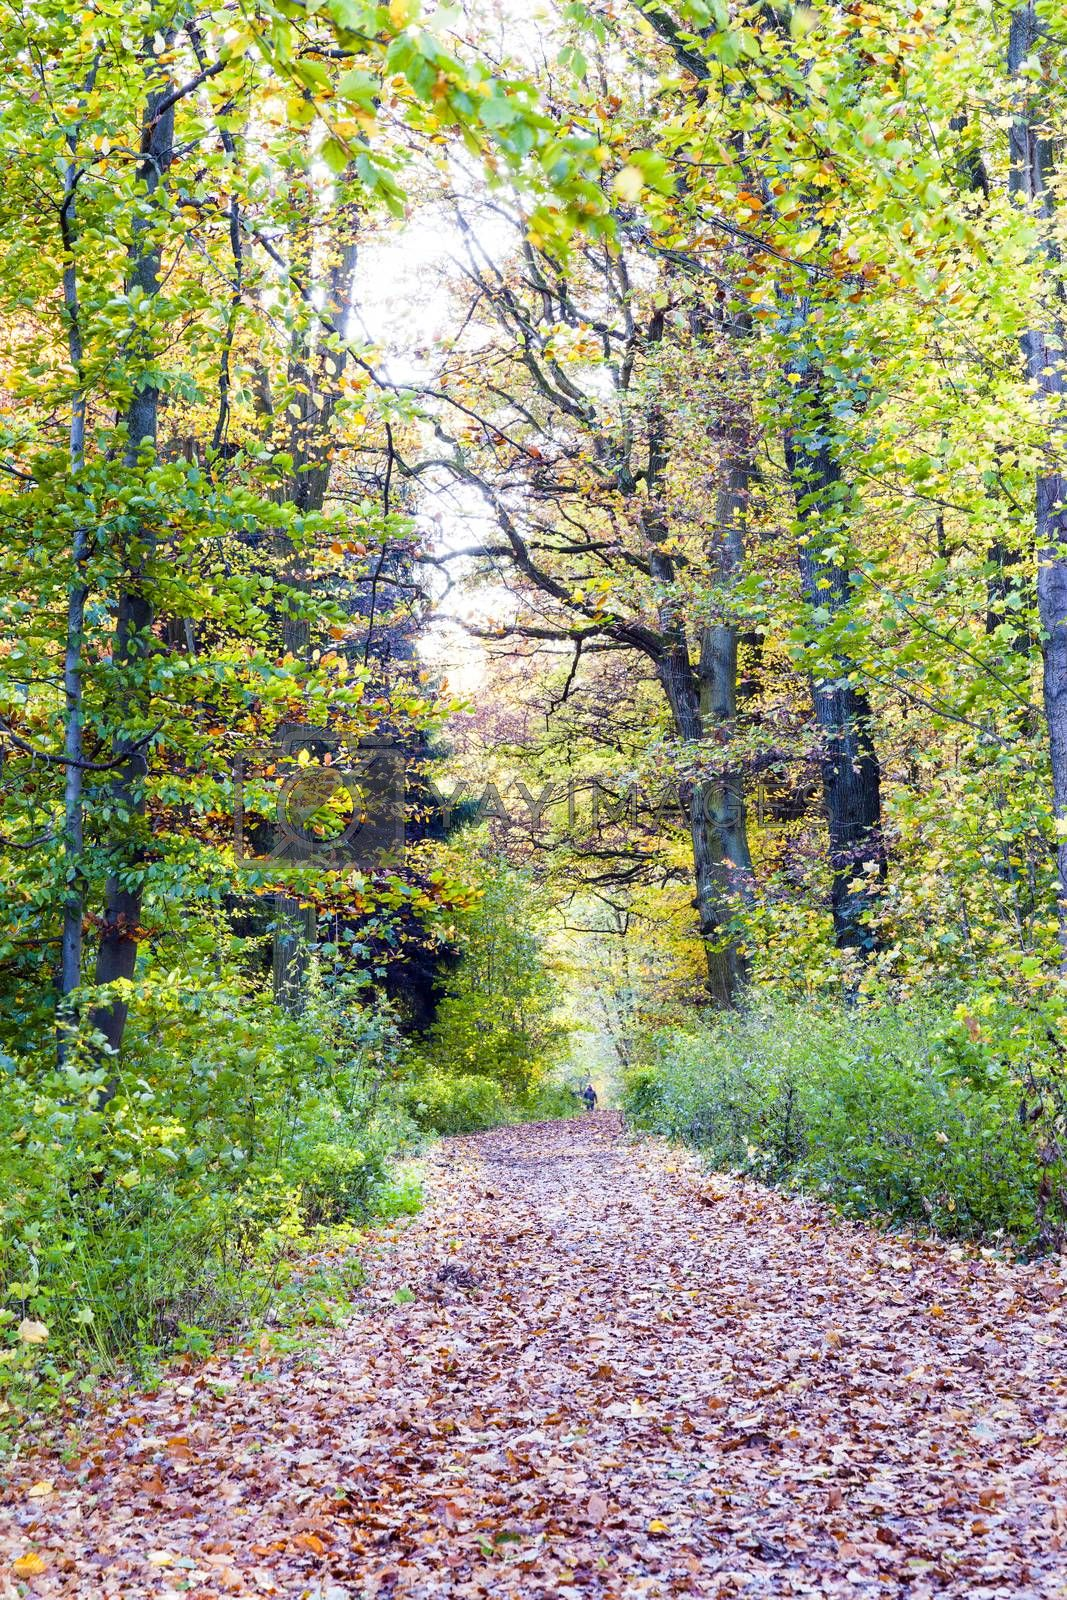 View of a dirt way in the mixed oak forest